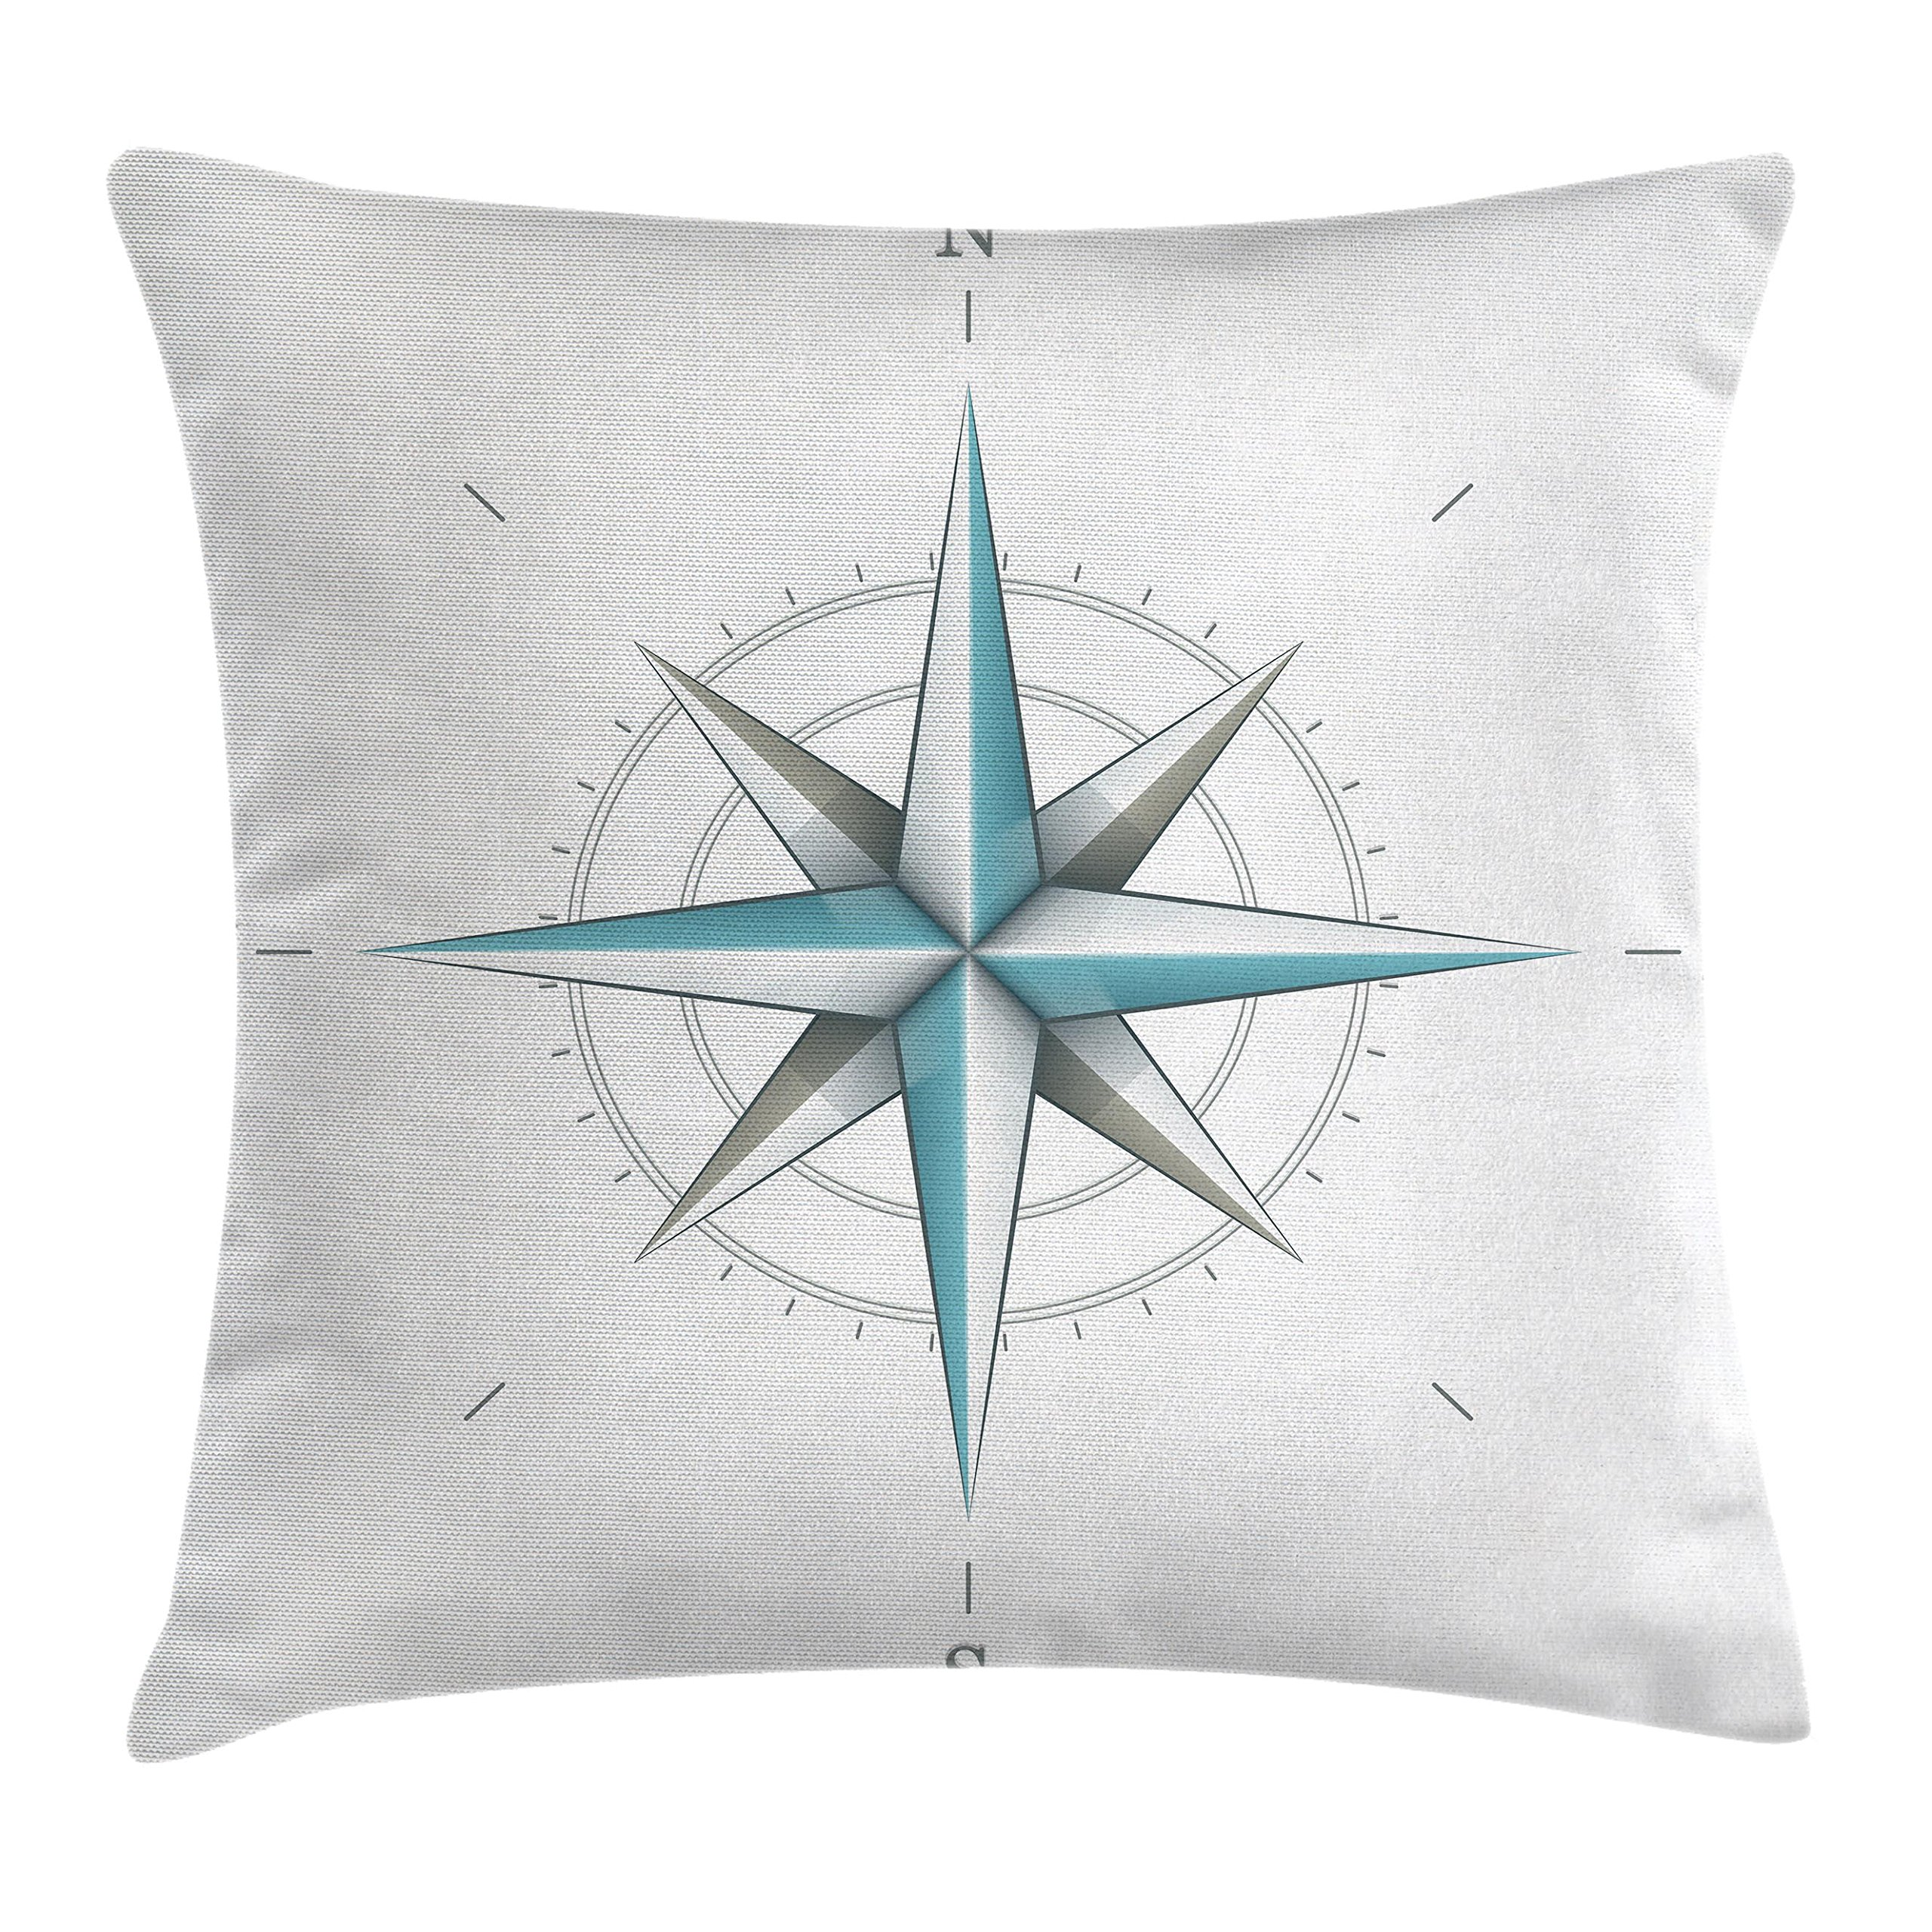 Ambesonne Compass Throw Pillow Cushion Cover, Antique Wind Rose Diagram for Cardinal Directions Axis of Earth Illustration, Decorative Square Accent Pillow Case, 18 X 18 Inches, Teal and Dimgray